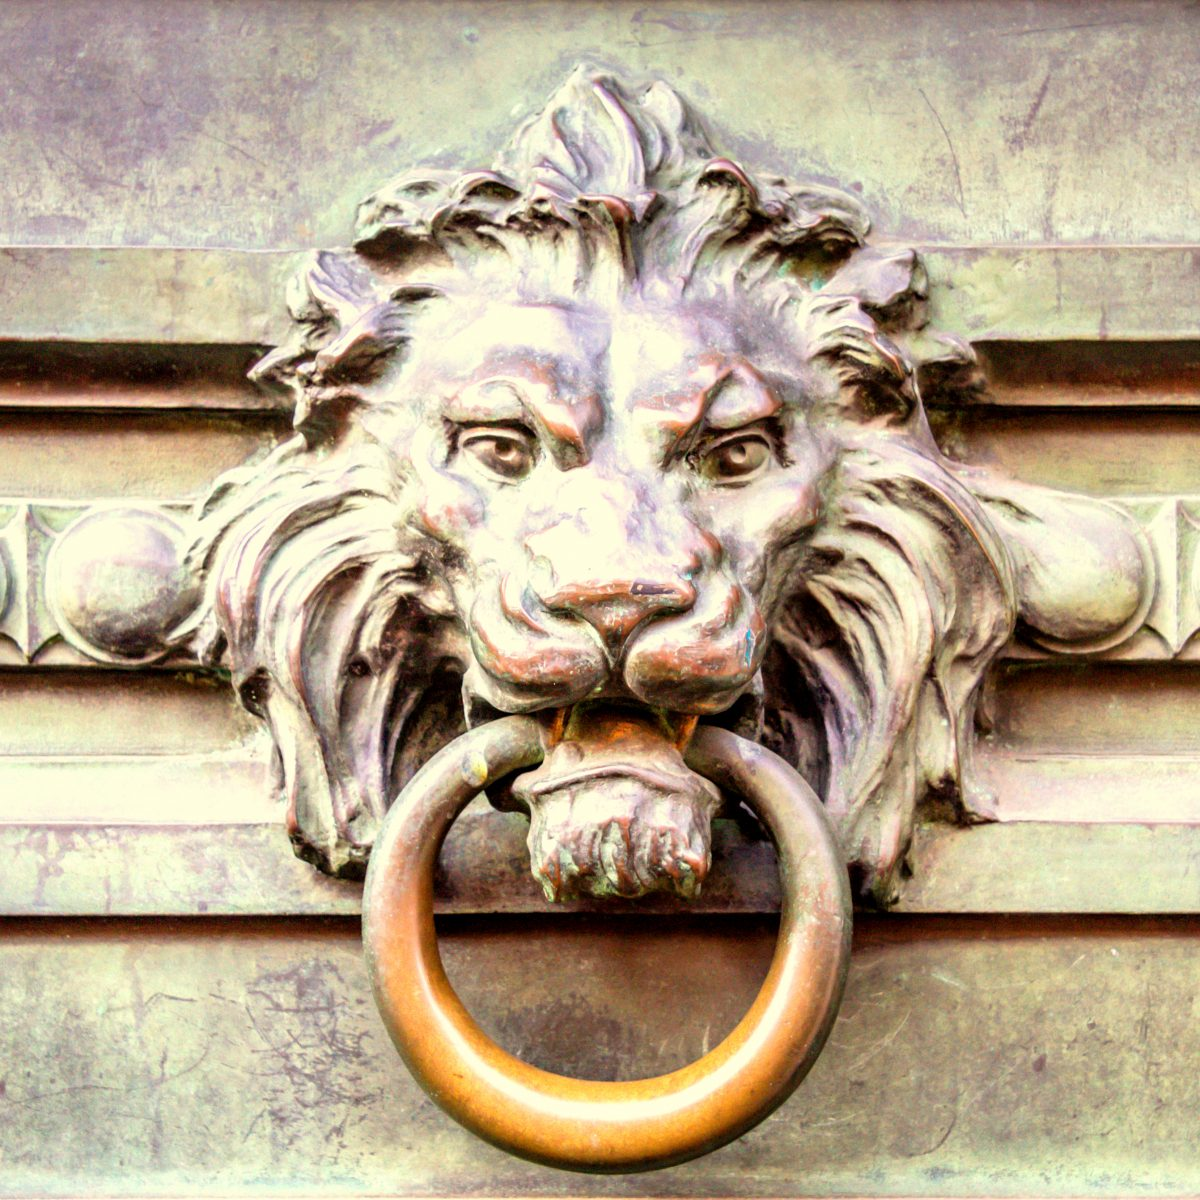 A antique lion door knocker showing age and patina